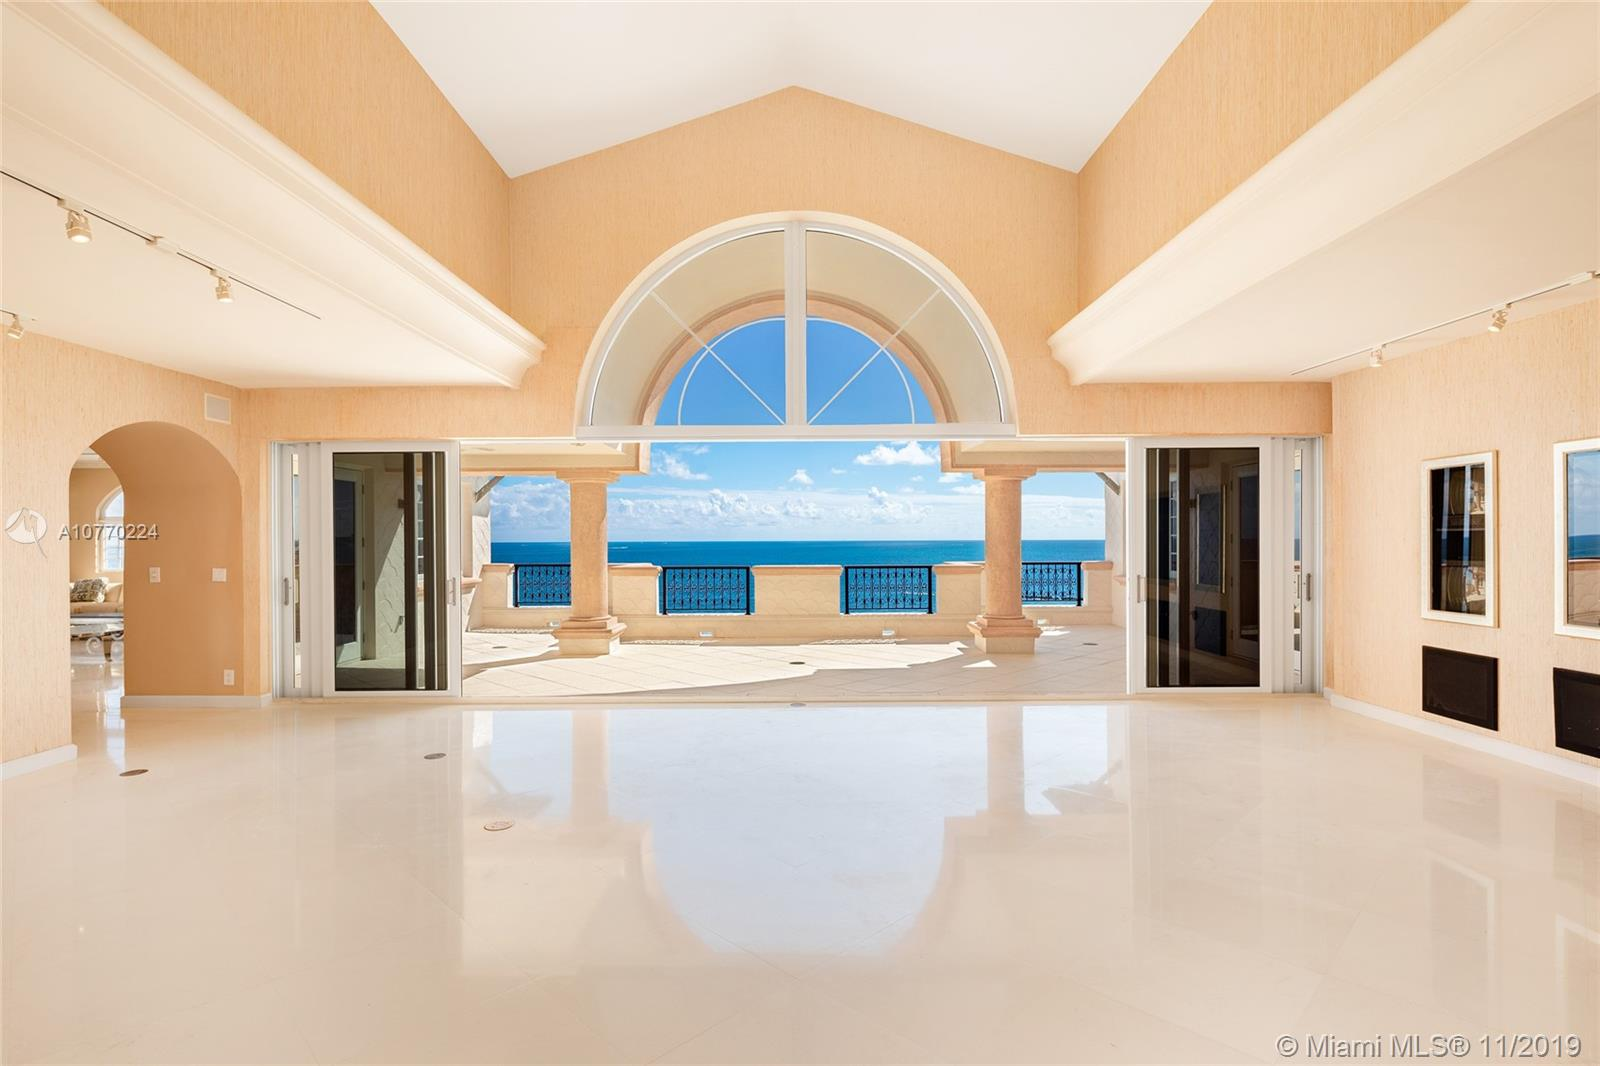 7795 Fisher Island Dr, Unit #7795 Luxury Real Estate